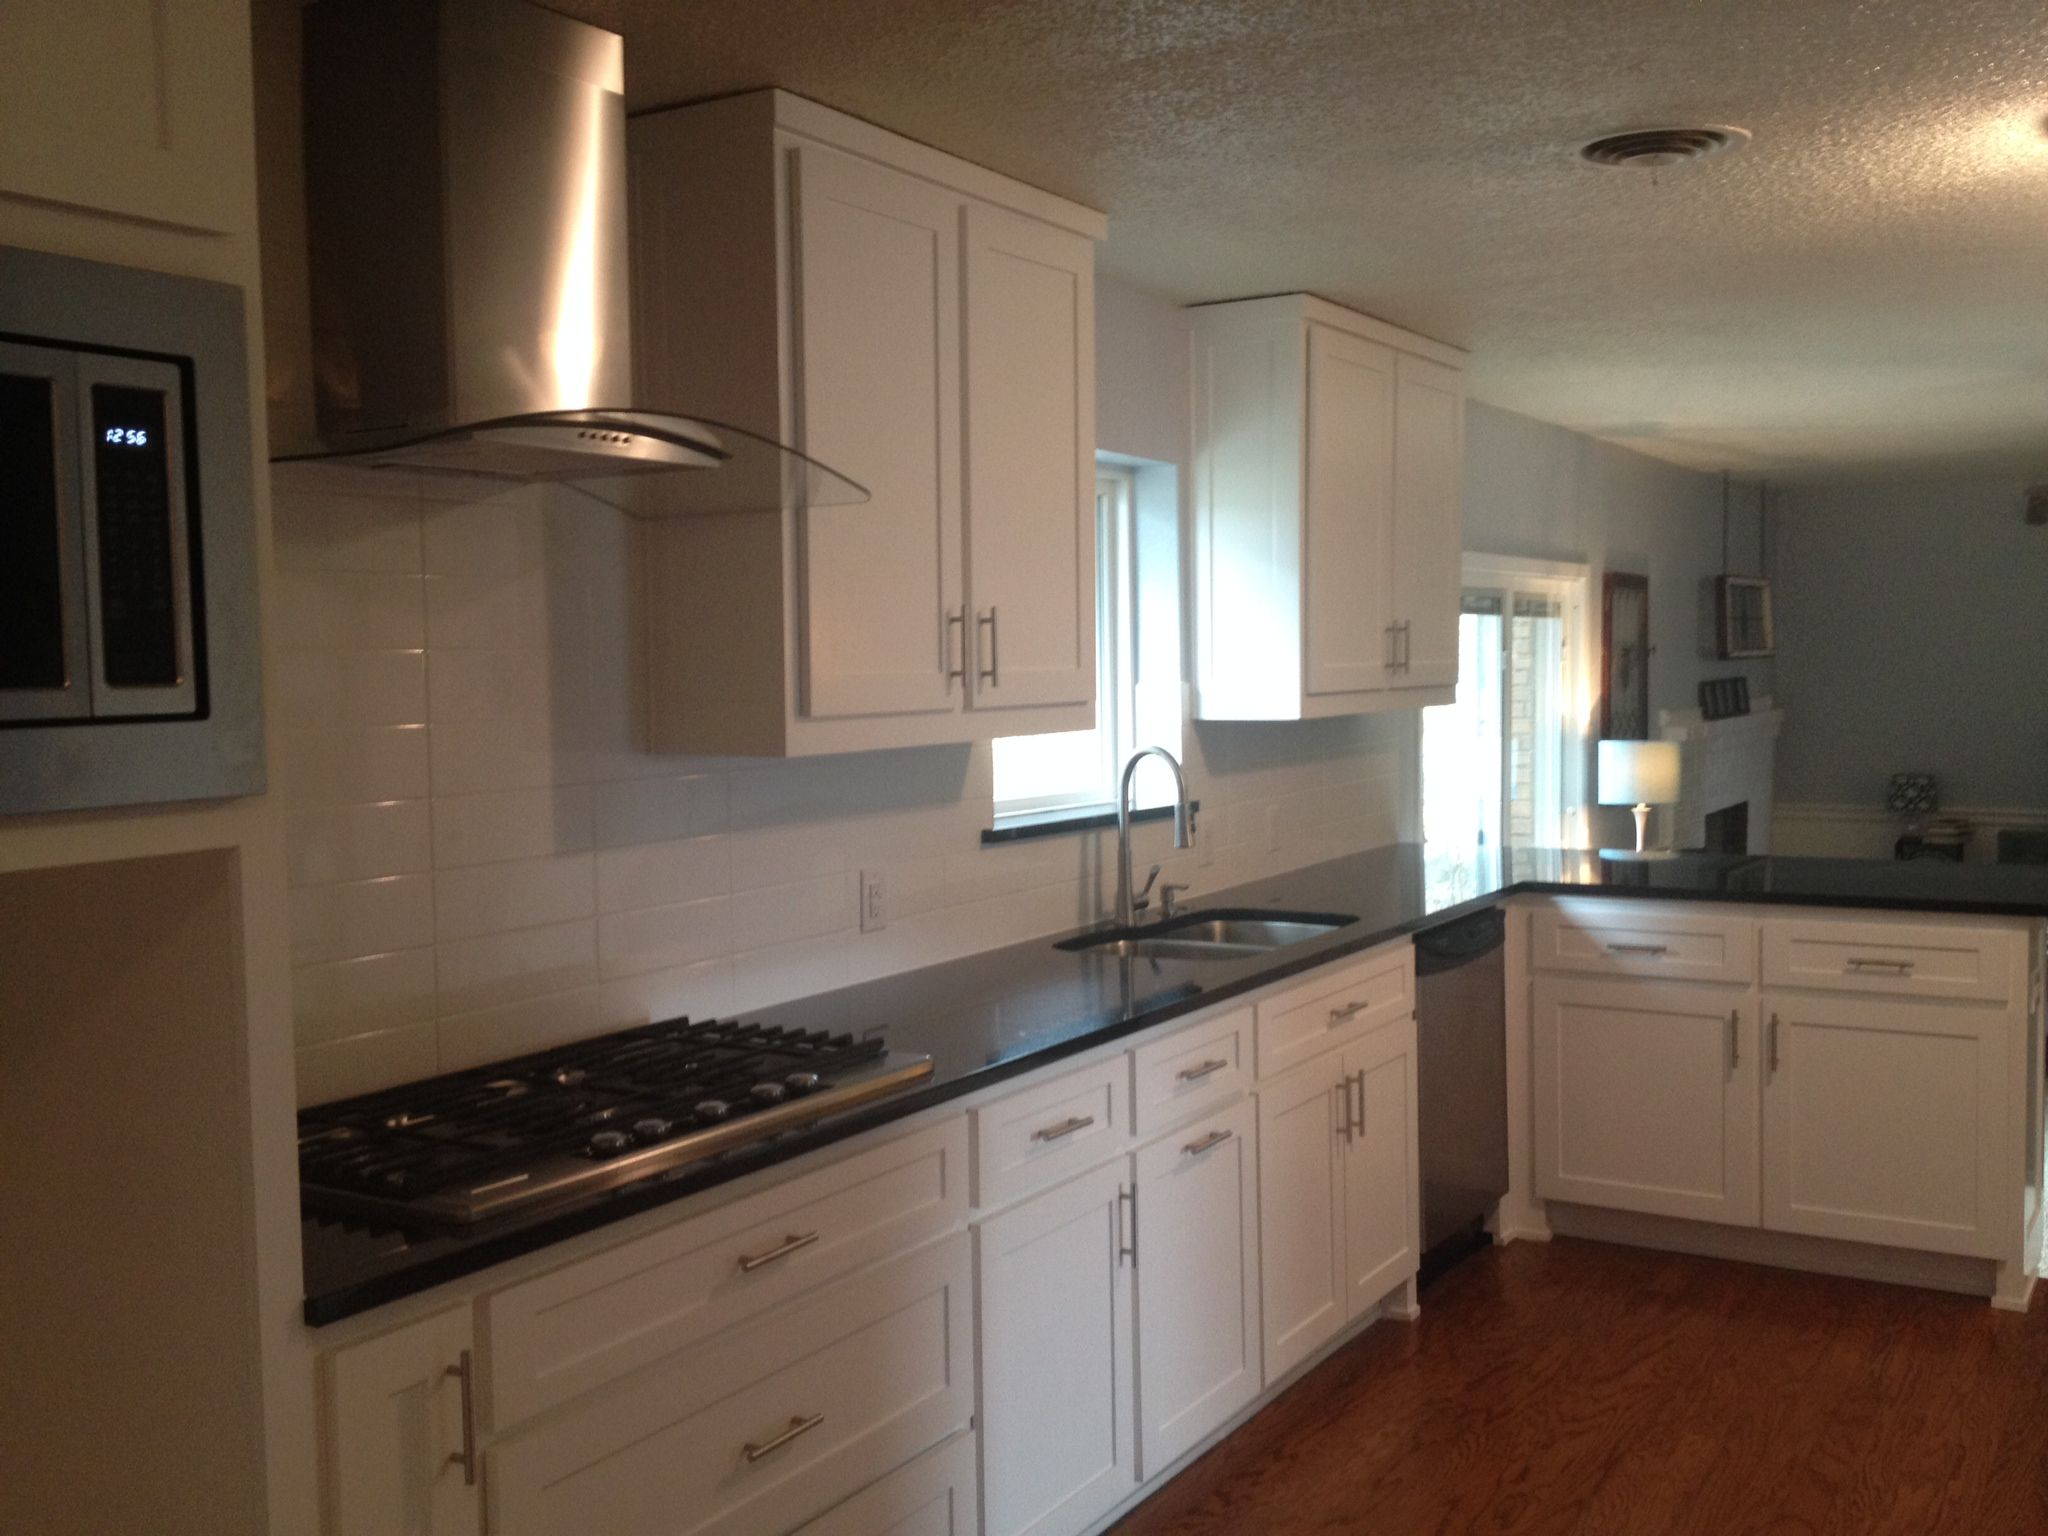 White Shaker Style Cabinets with Absolute Black Granite ...